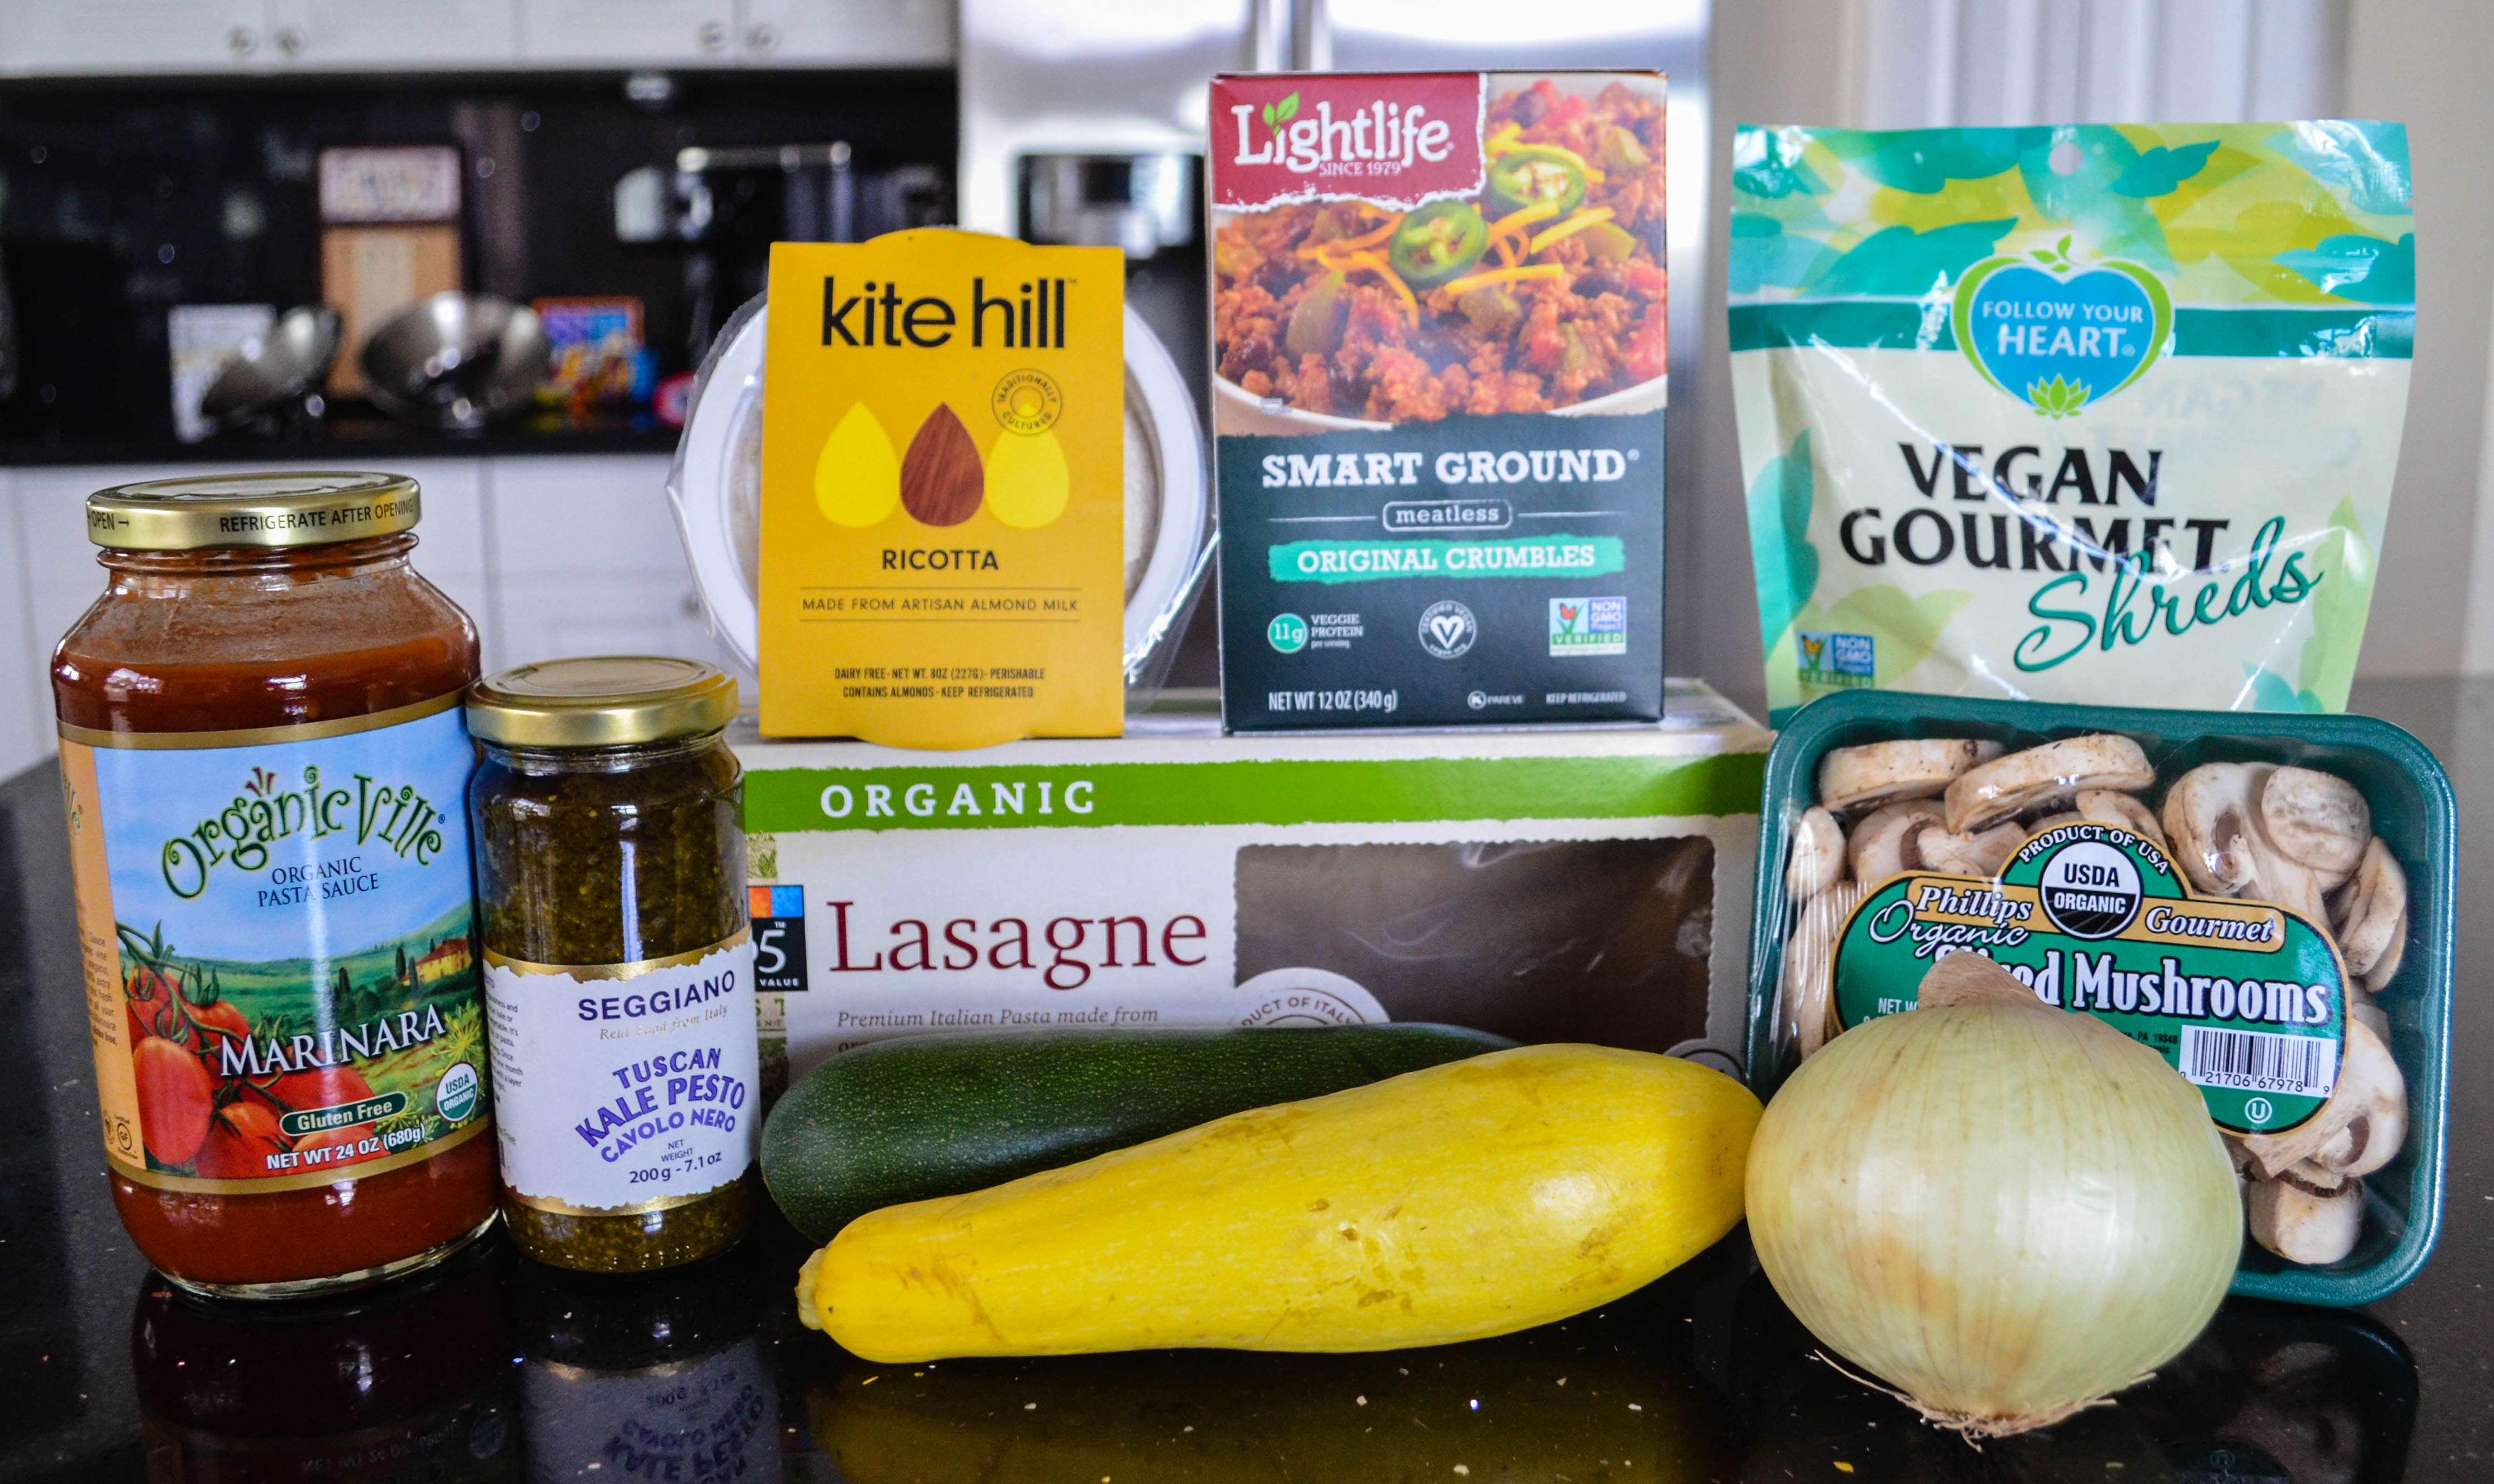 Lasagne ingredients (1 of 1)